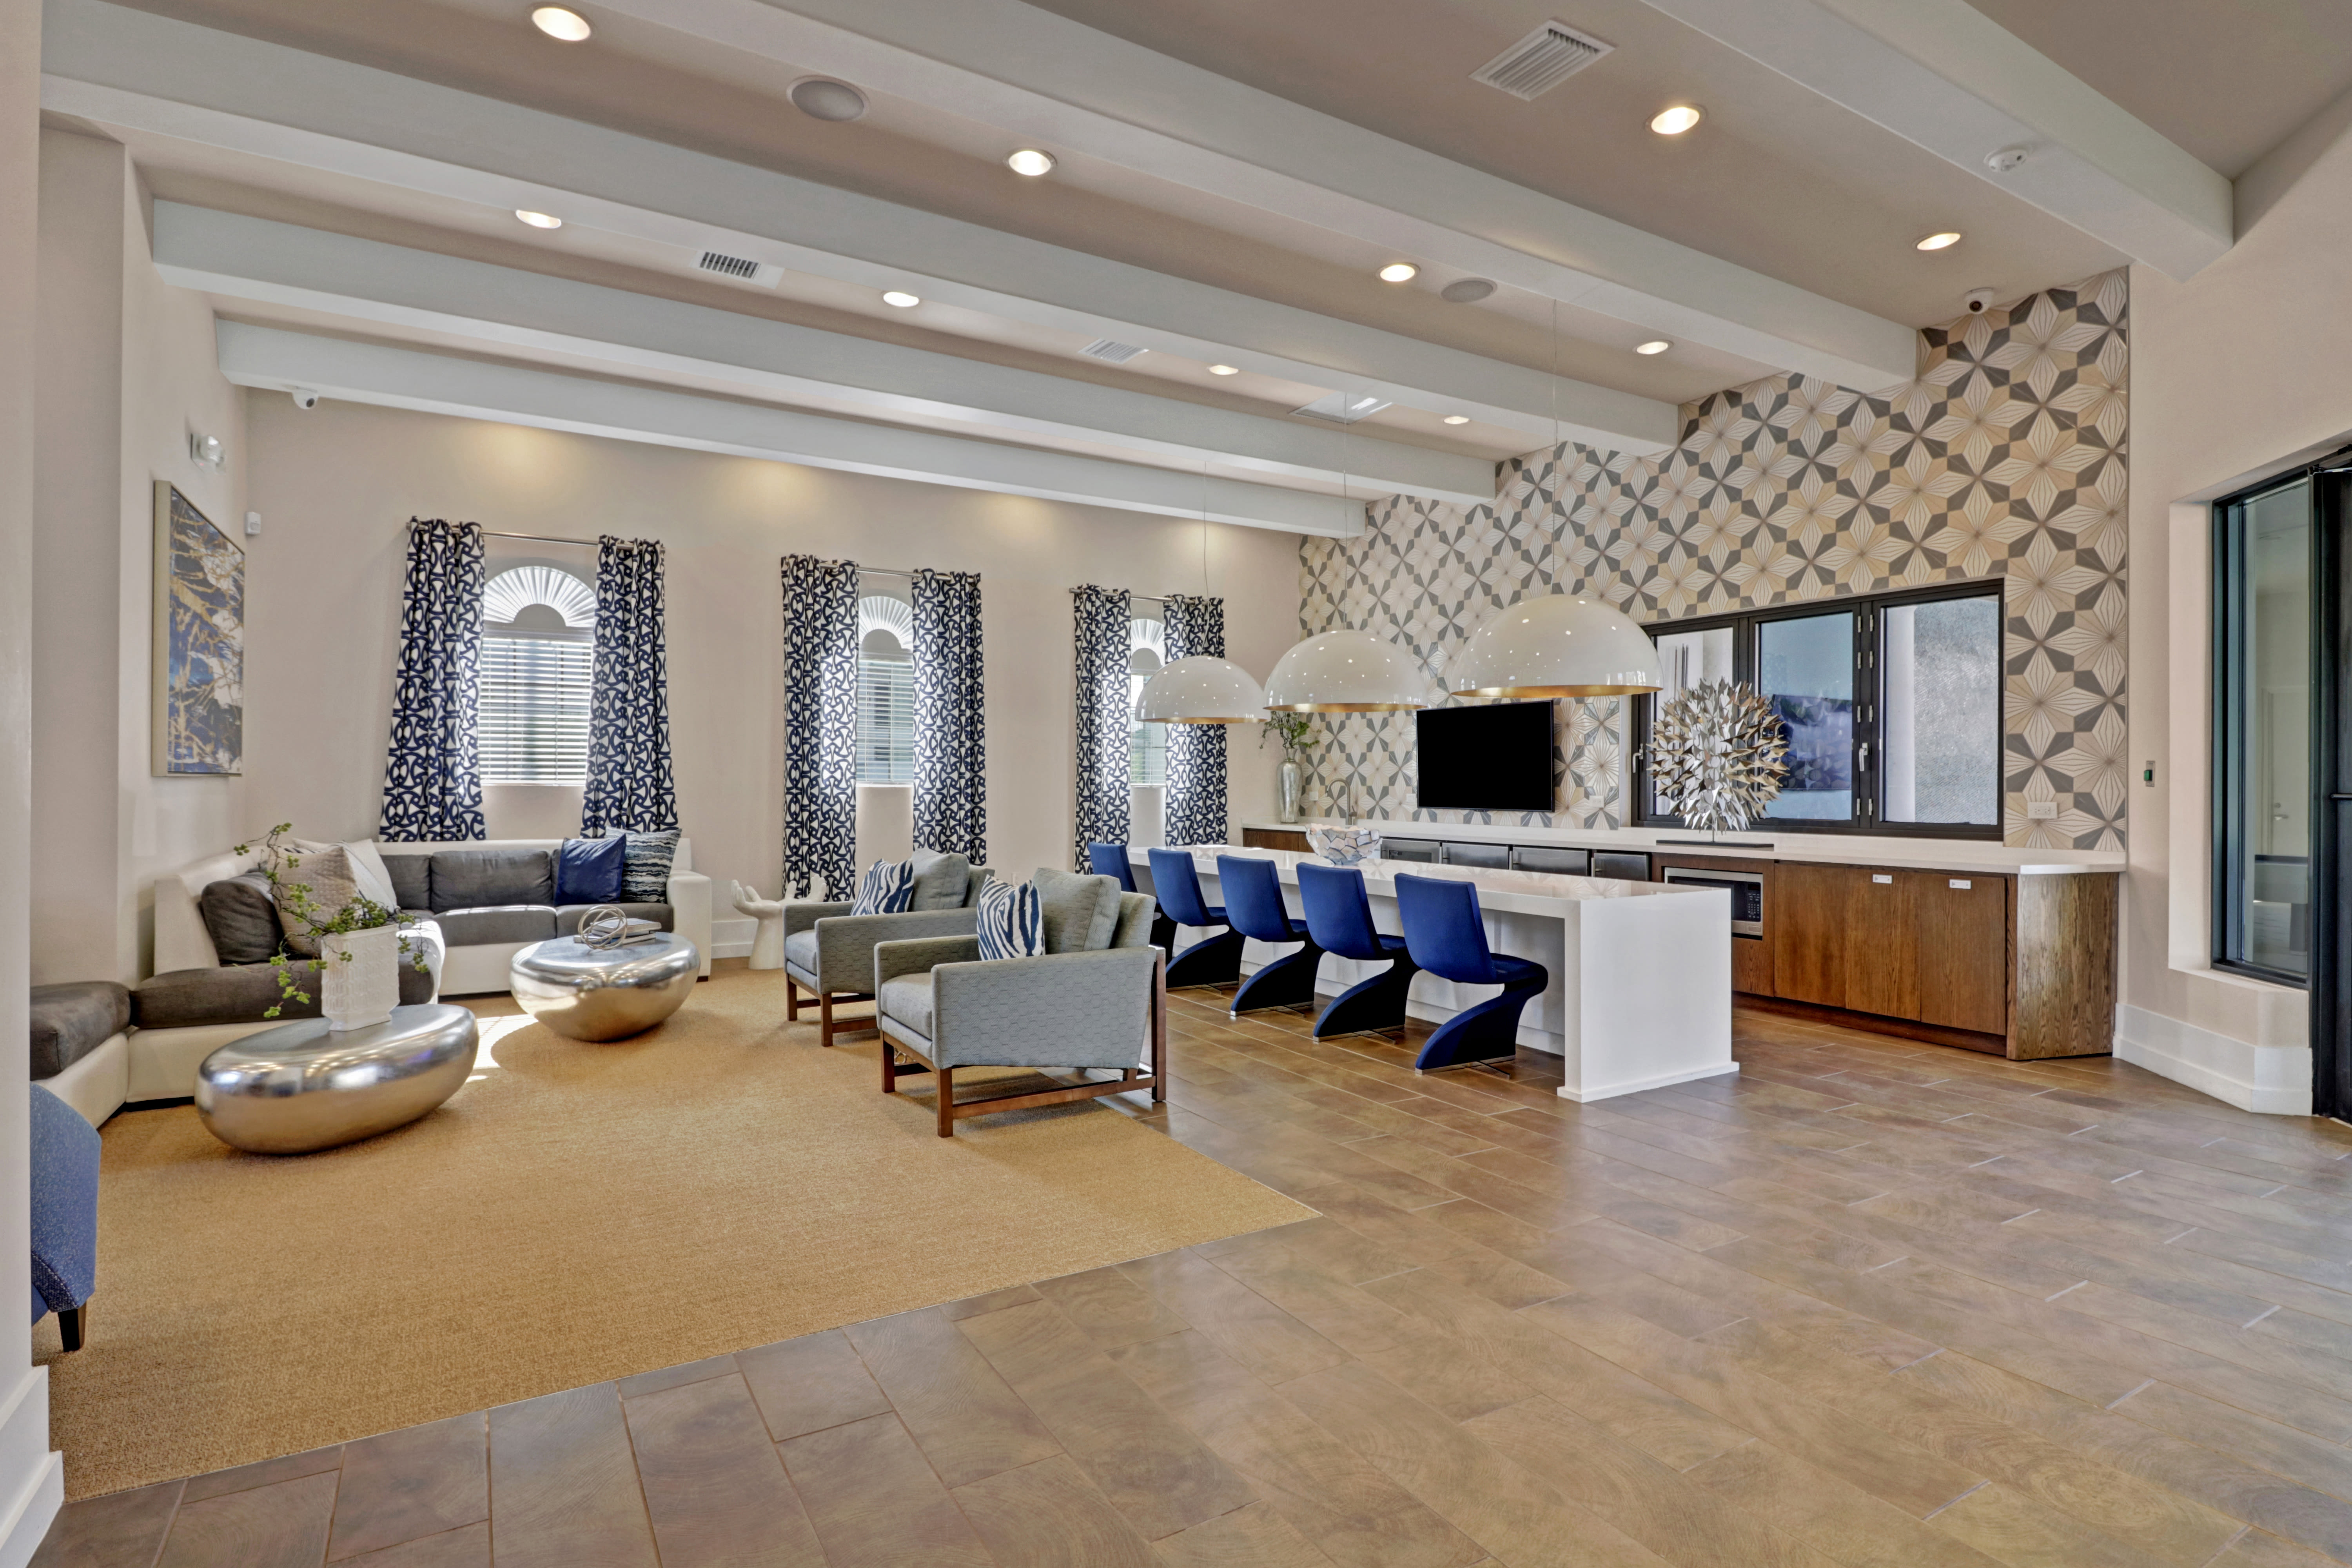 Beautiful clubhouse interior at Linden Pointe in Pompano Beach, Florida